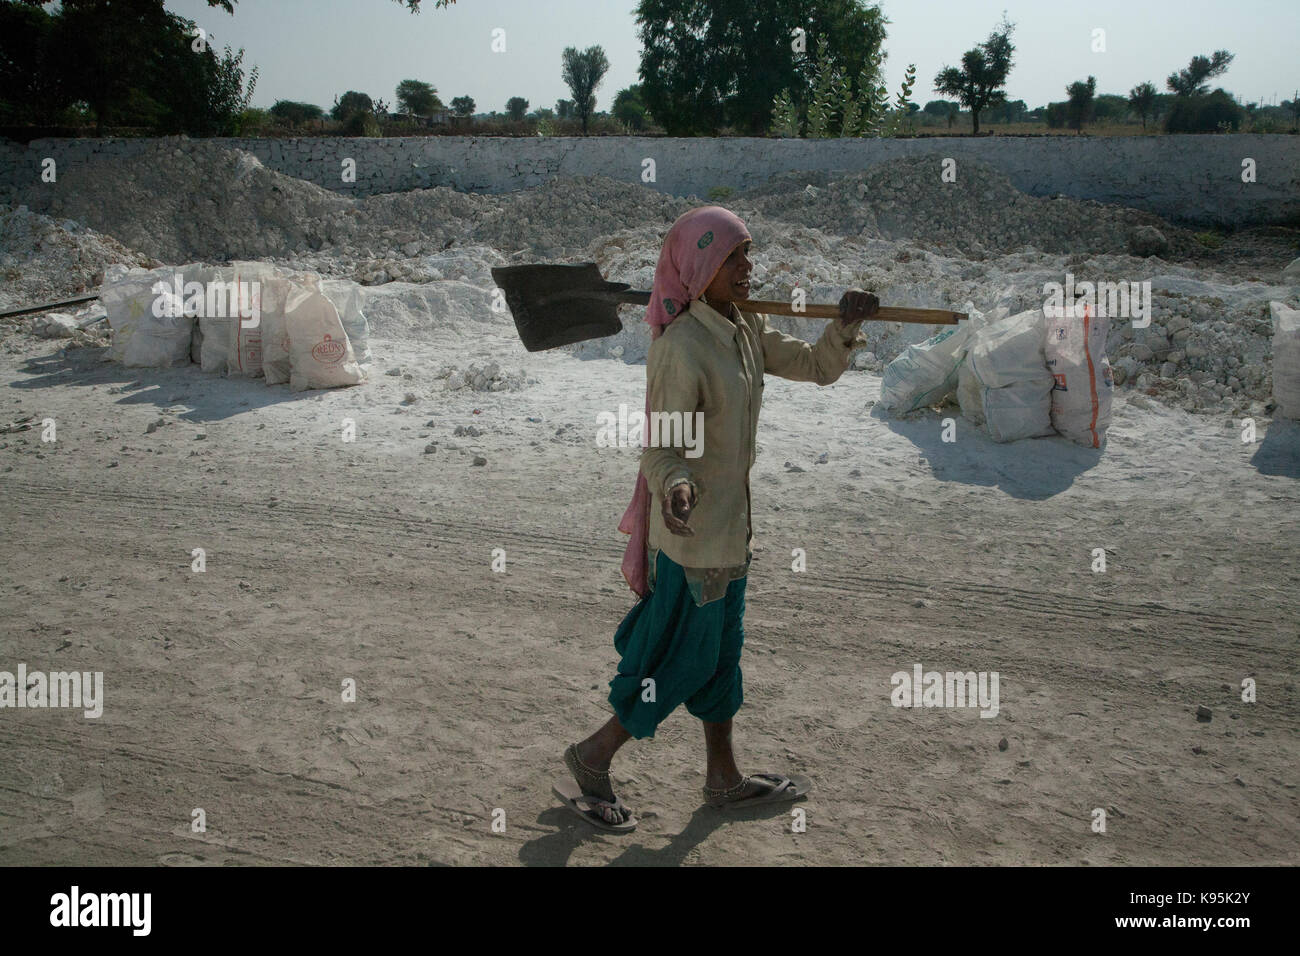 girl working n a field of lime stone, Rajasthan India - Stock Image